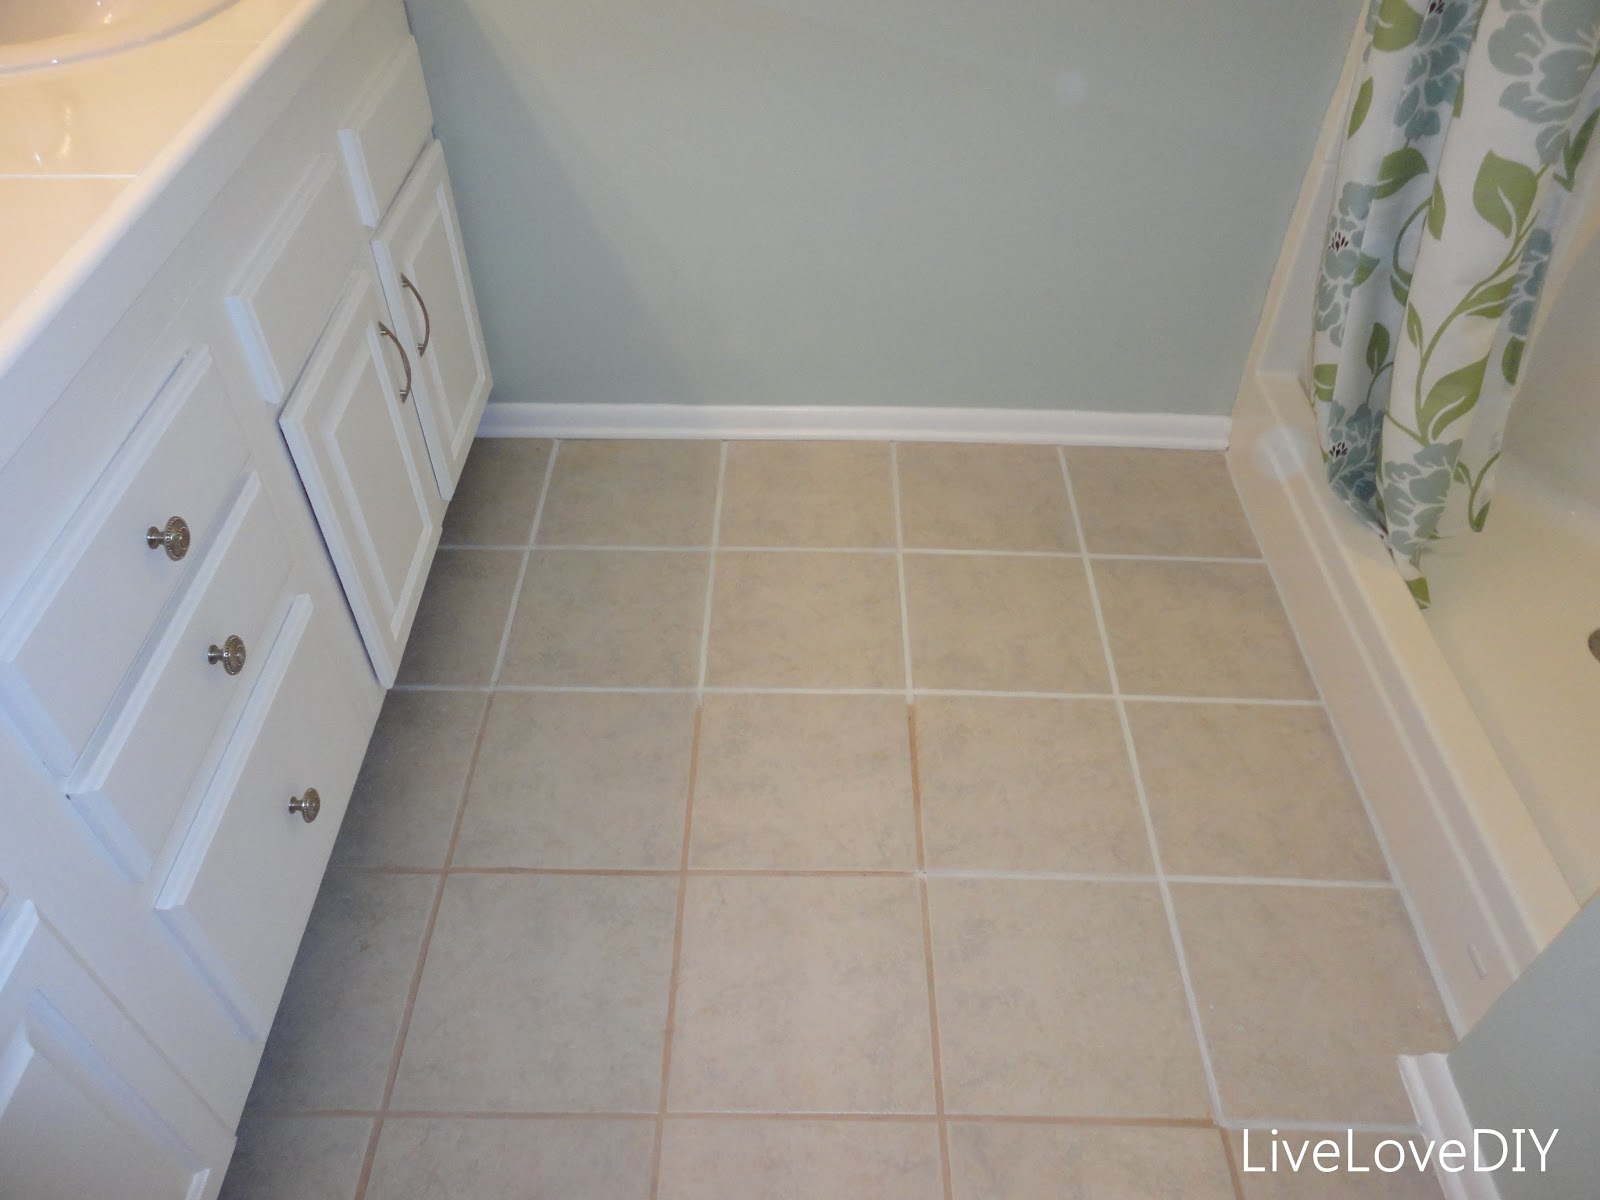 How To Redo Bathroom Tile Grout - To